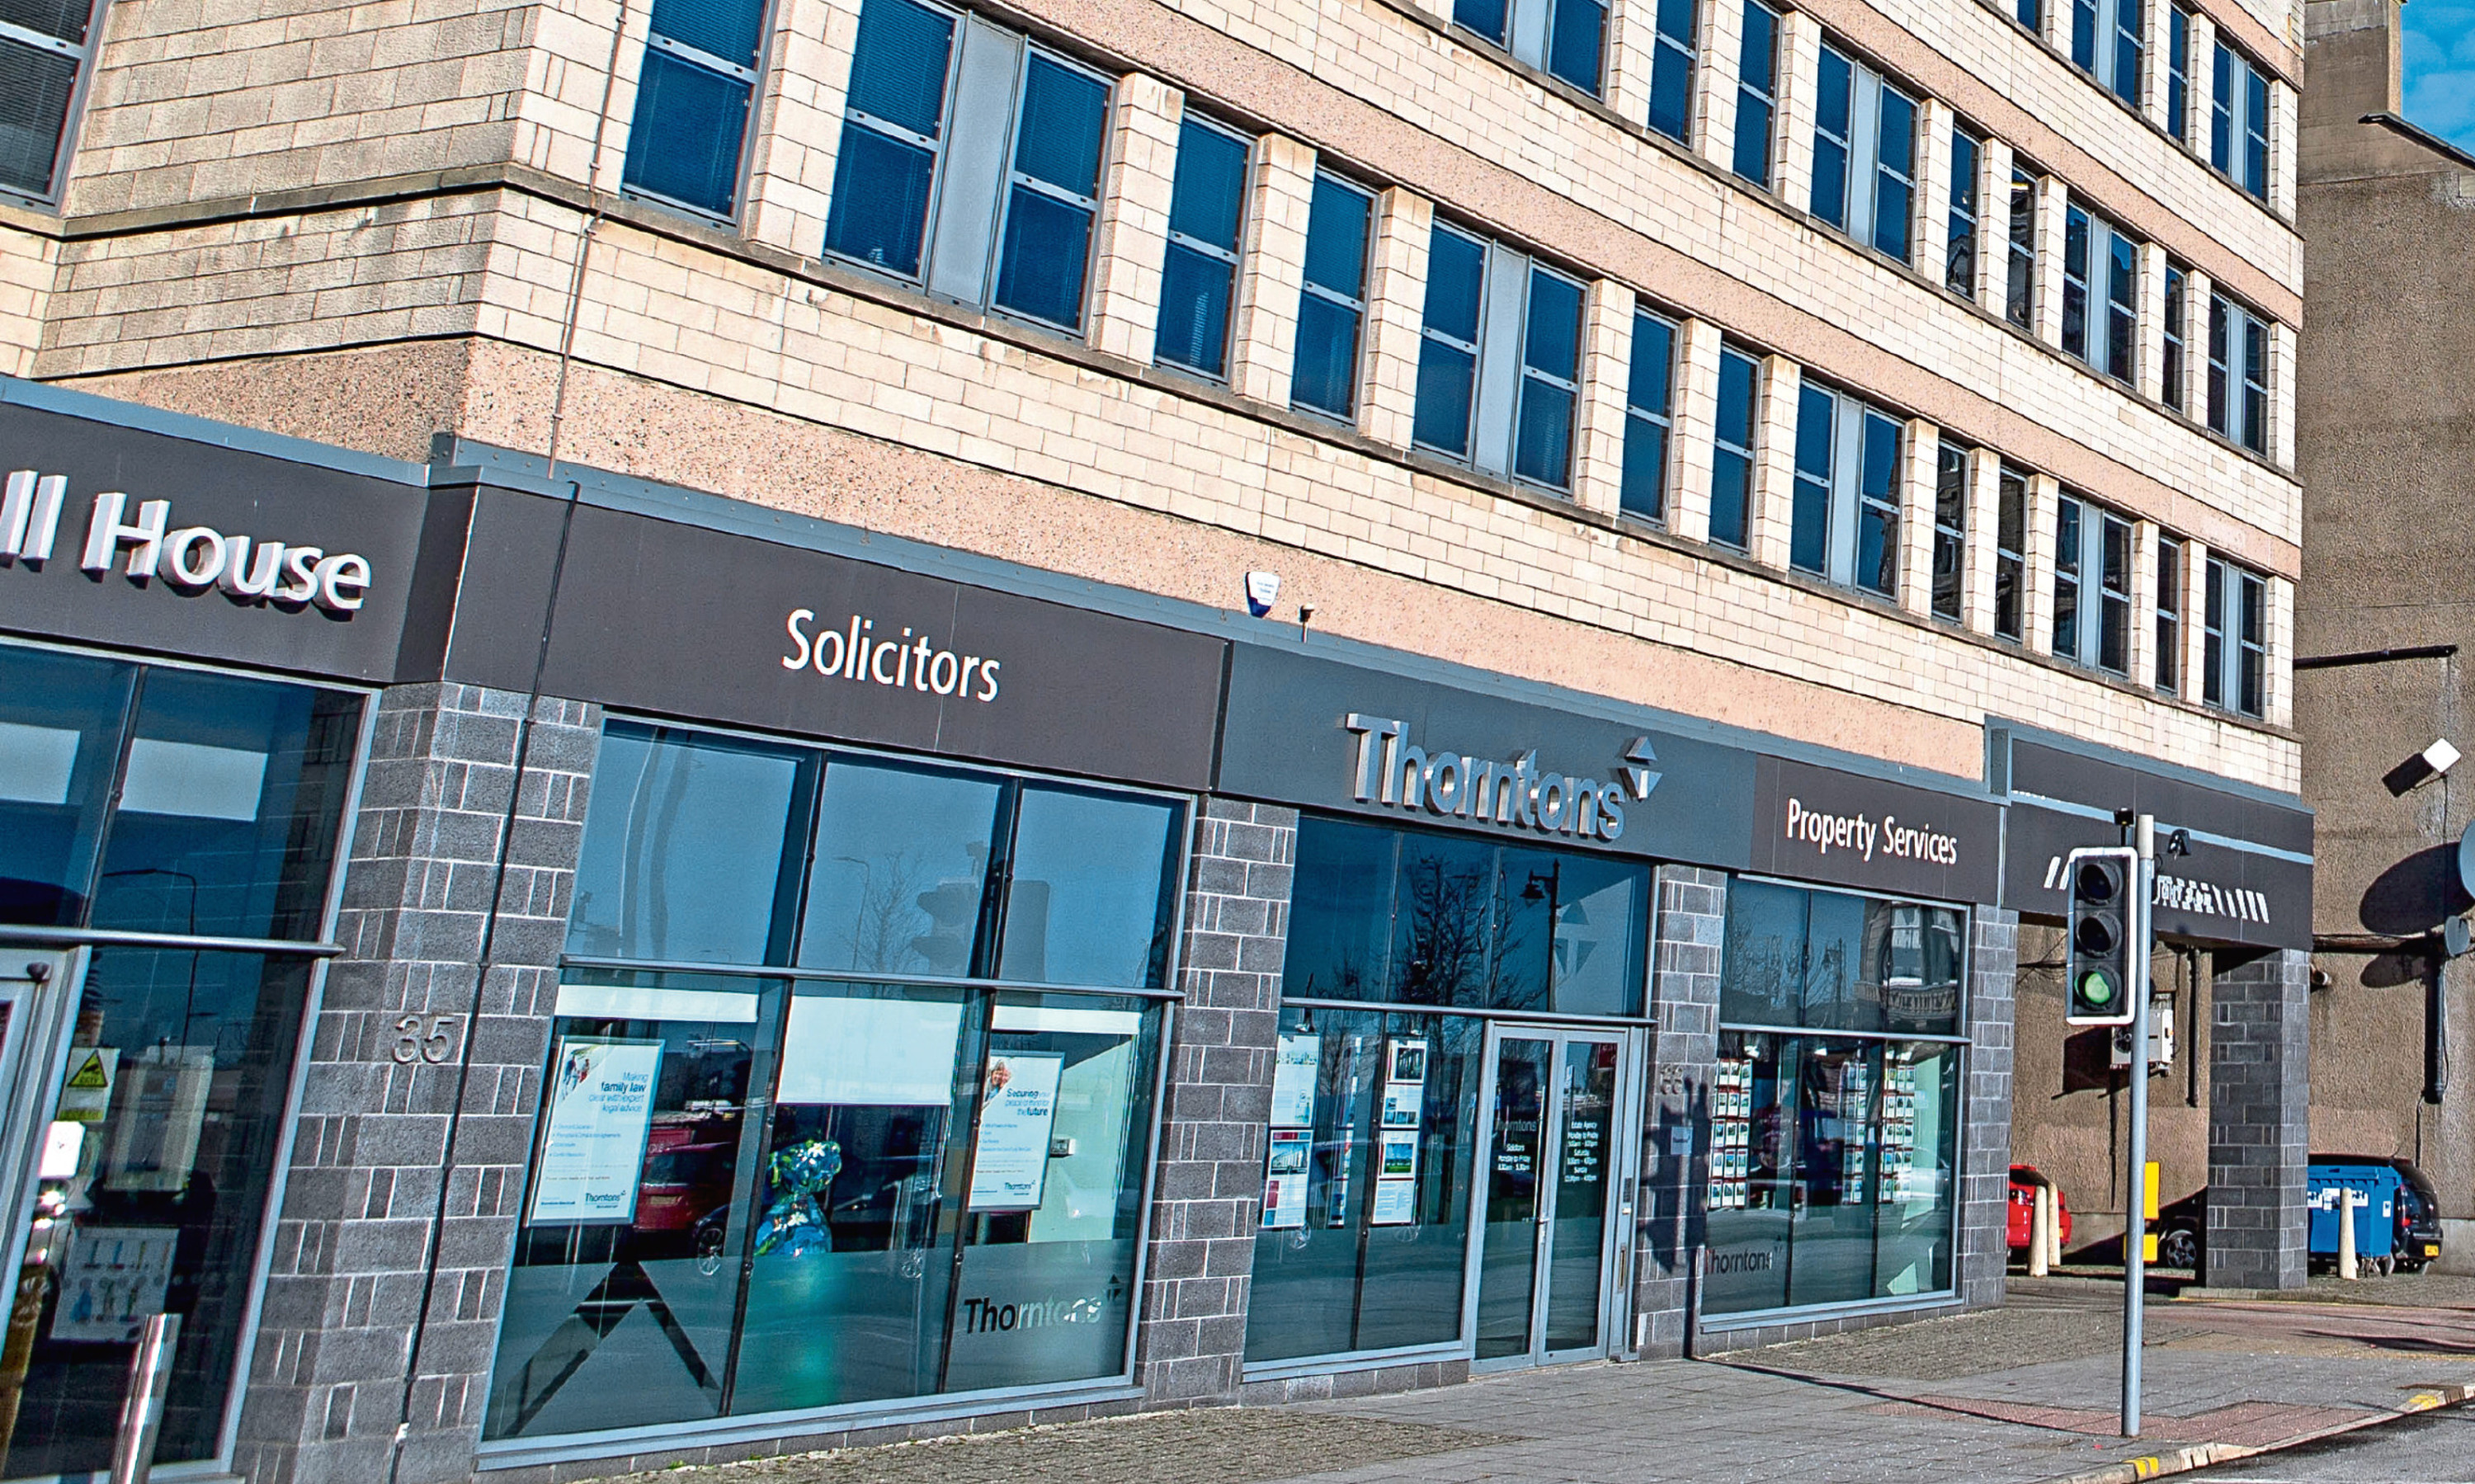 Thorntons Investments is housed within the Thorntons building in Dundee.